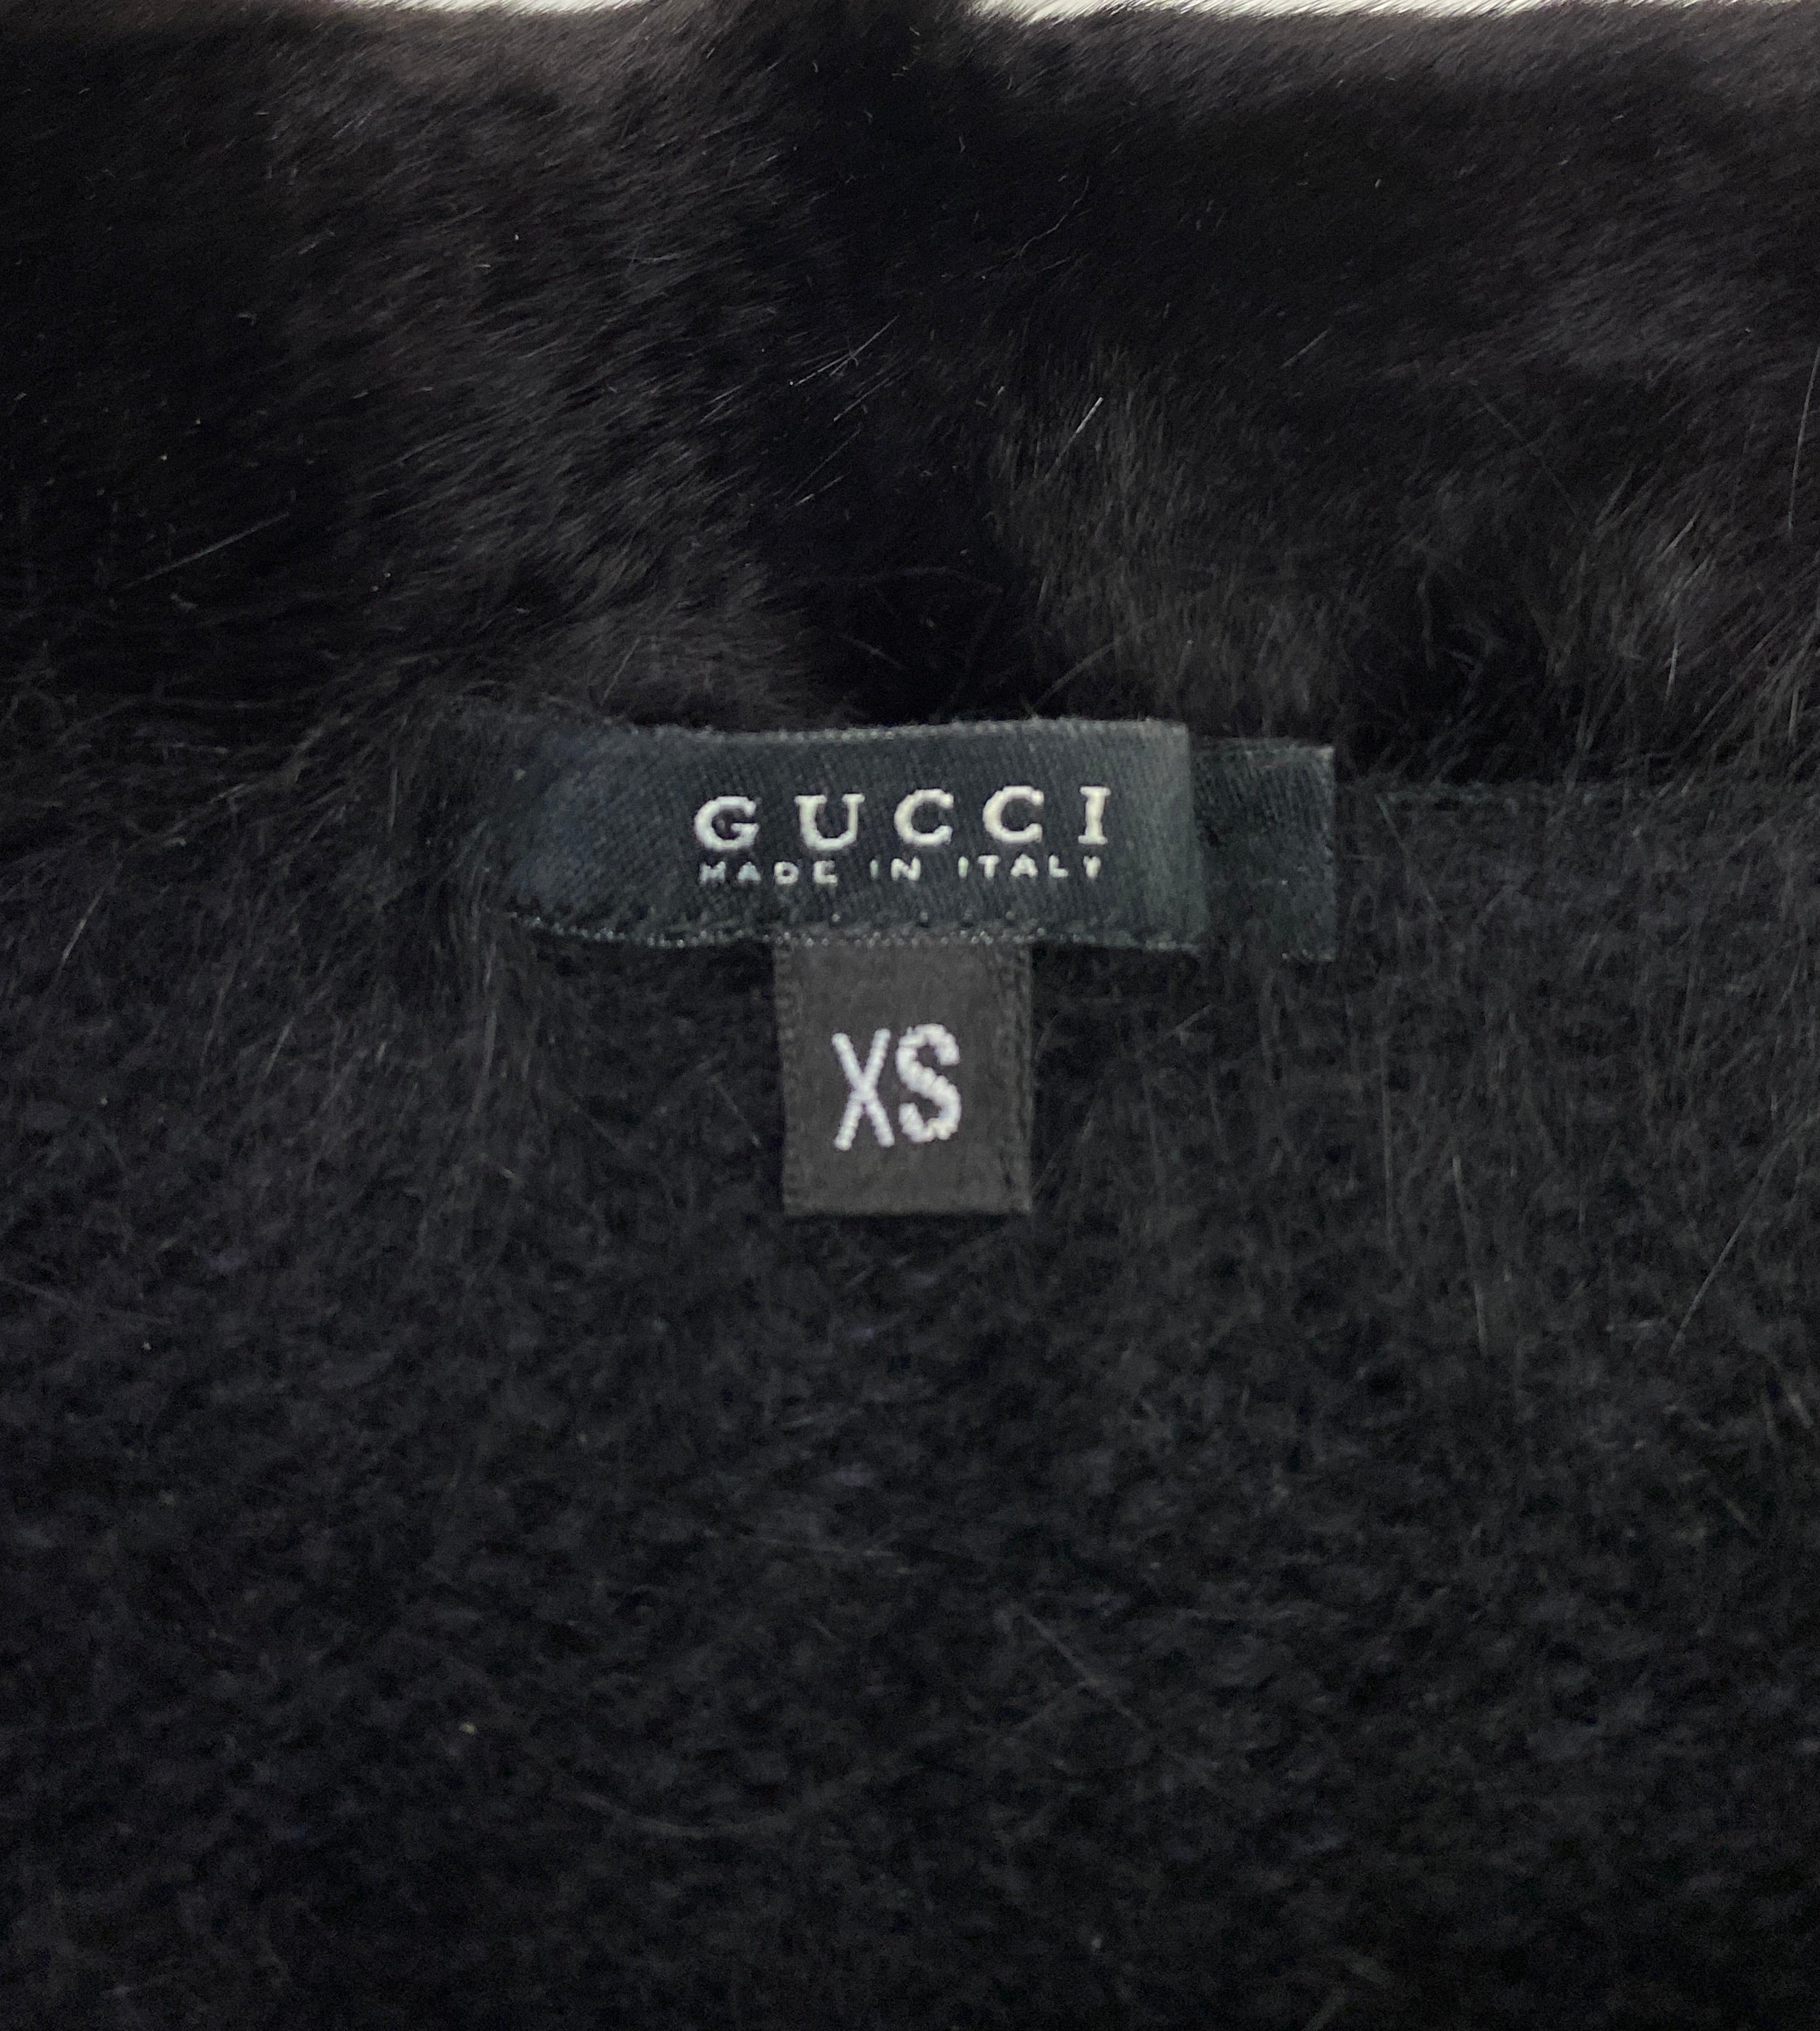 Gucci Fall 2001 Angora Sweater with Mink details